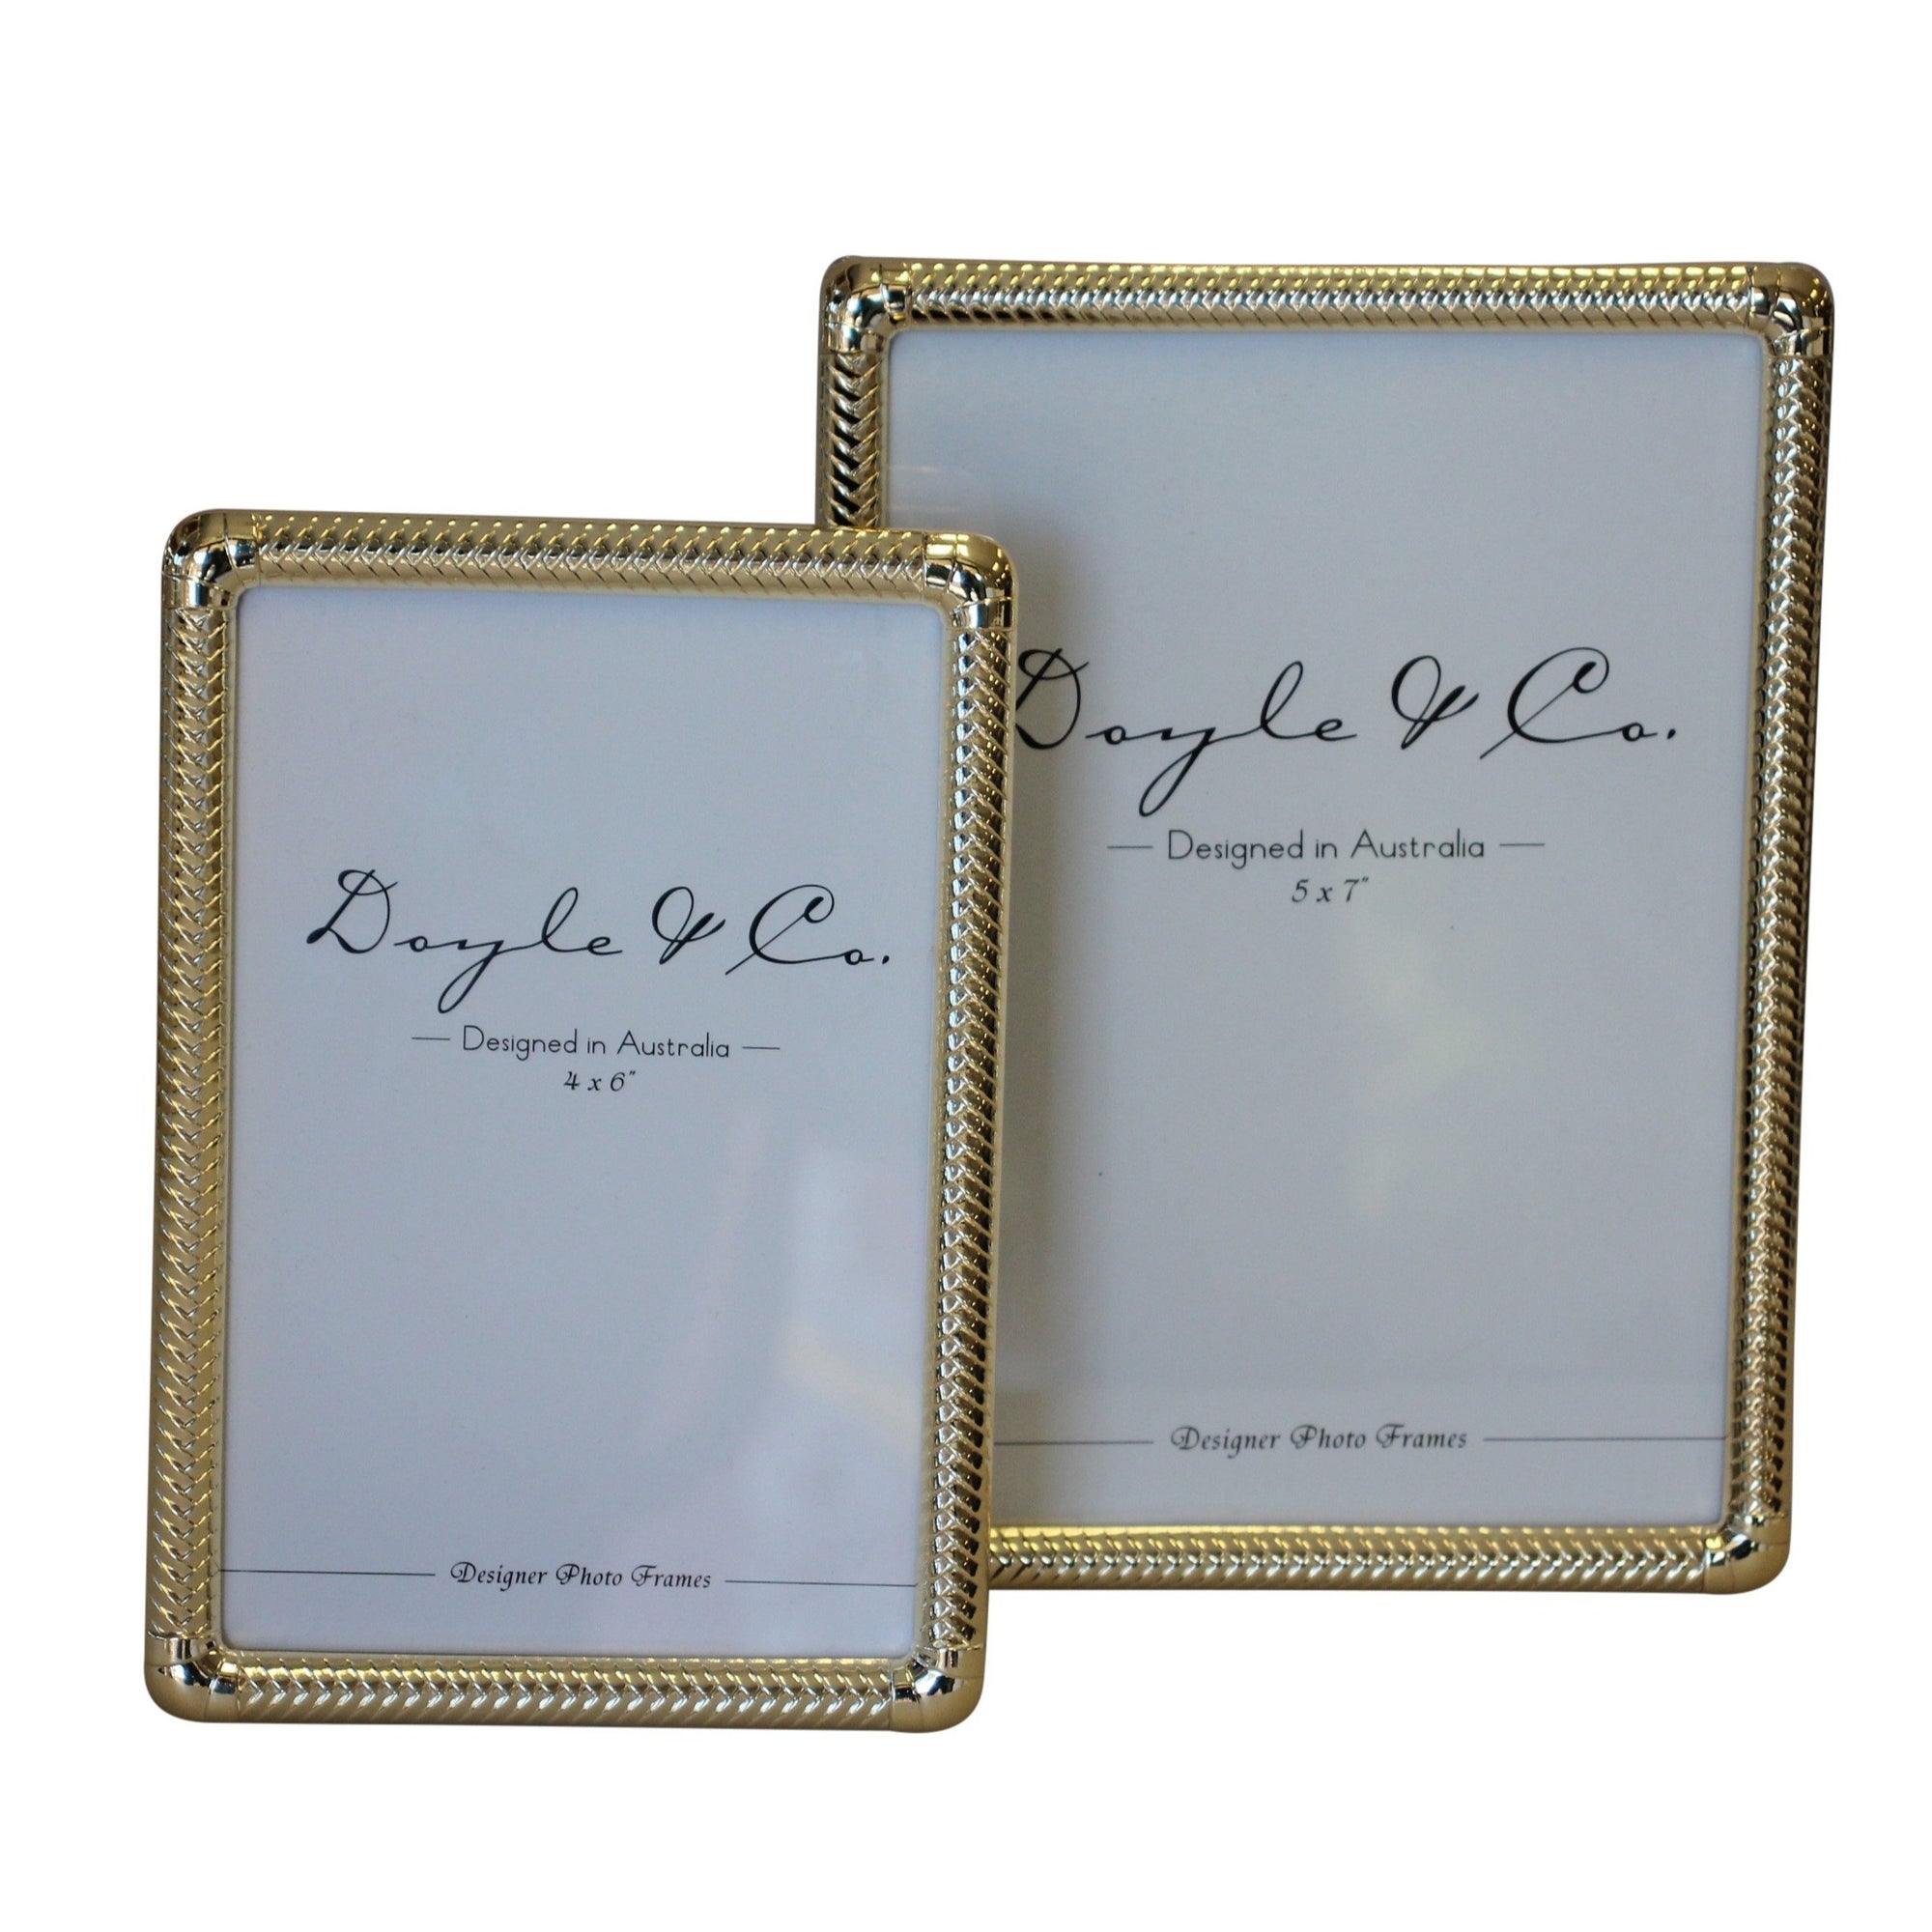 Bancroft Gold Weave Edge Frame - Large